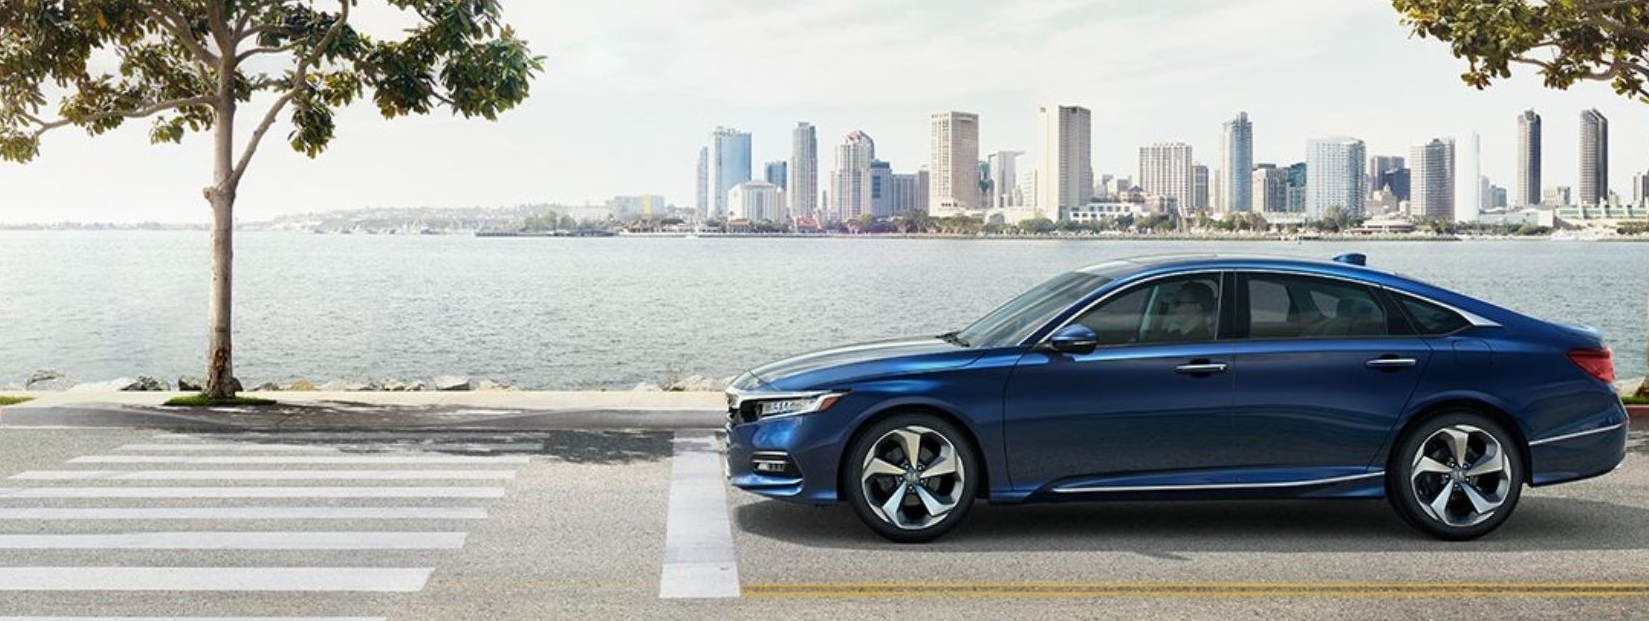 2020 Honda Accord for Sale near Vero Beach, FL